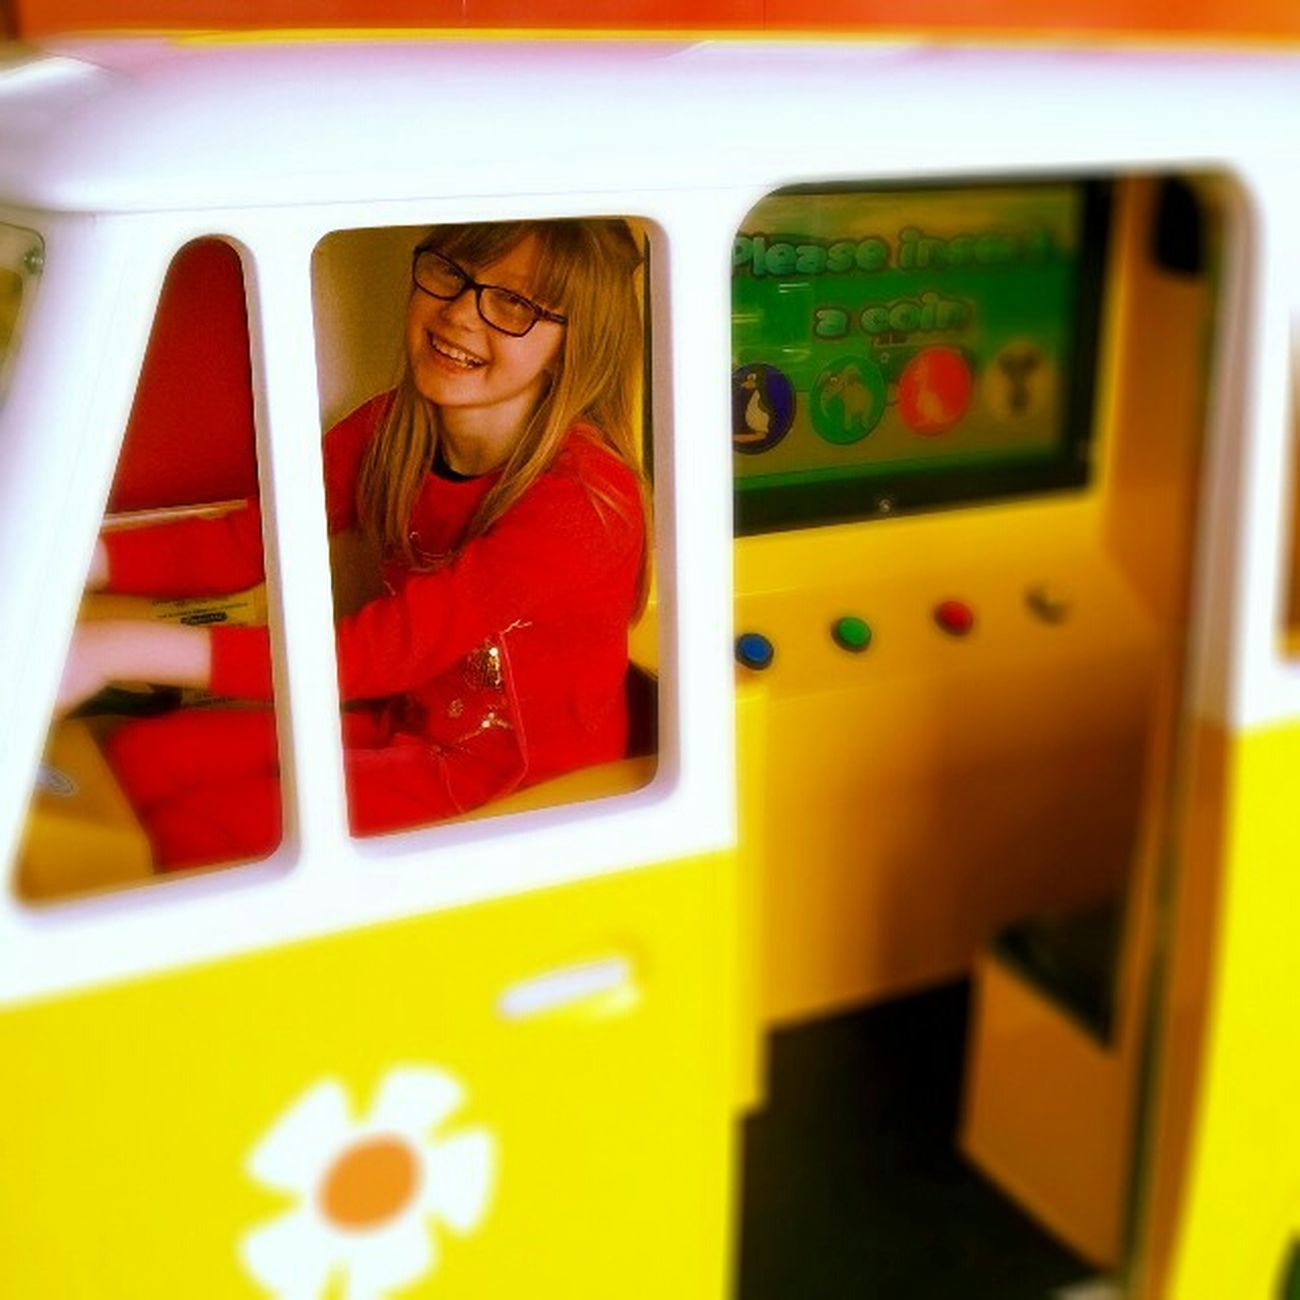 Saffron riding in the Hippie van Vw Camper My Kids I Have Cute Kids My Beautiful Daughter Big Smiles Enjoying Life